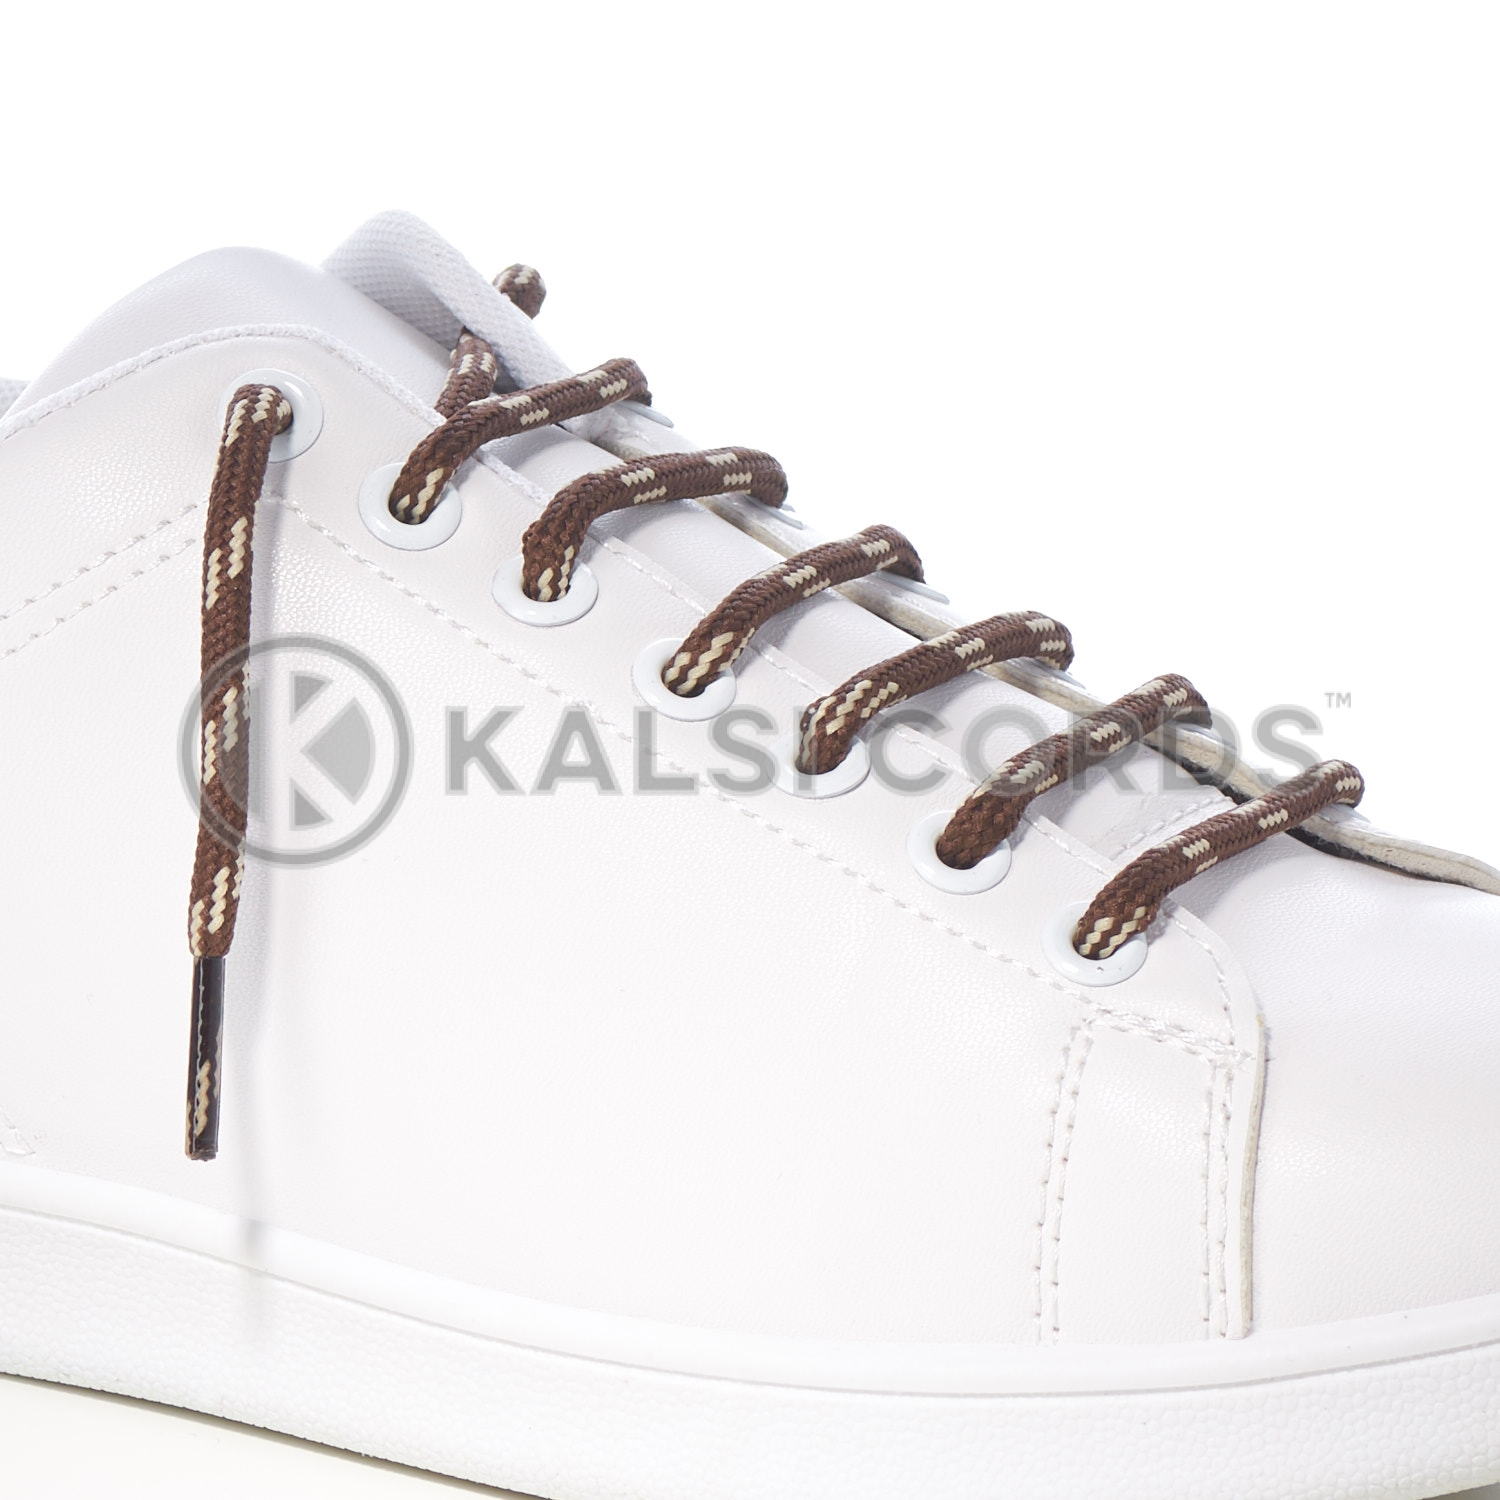 T621 5mm Round Cord Shoe Lace York Brown Cream 4 Fleck Kids Trainers Adults Hiking Walking Boots Kalsi Cords